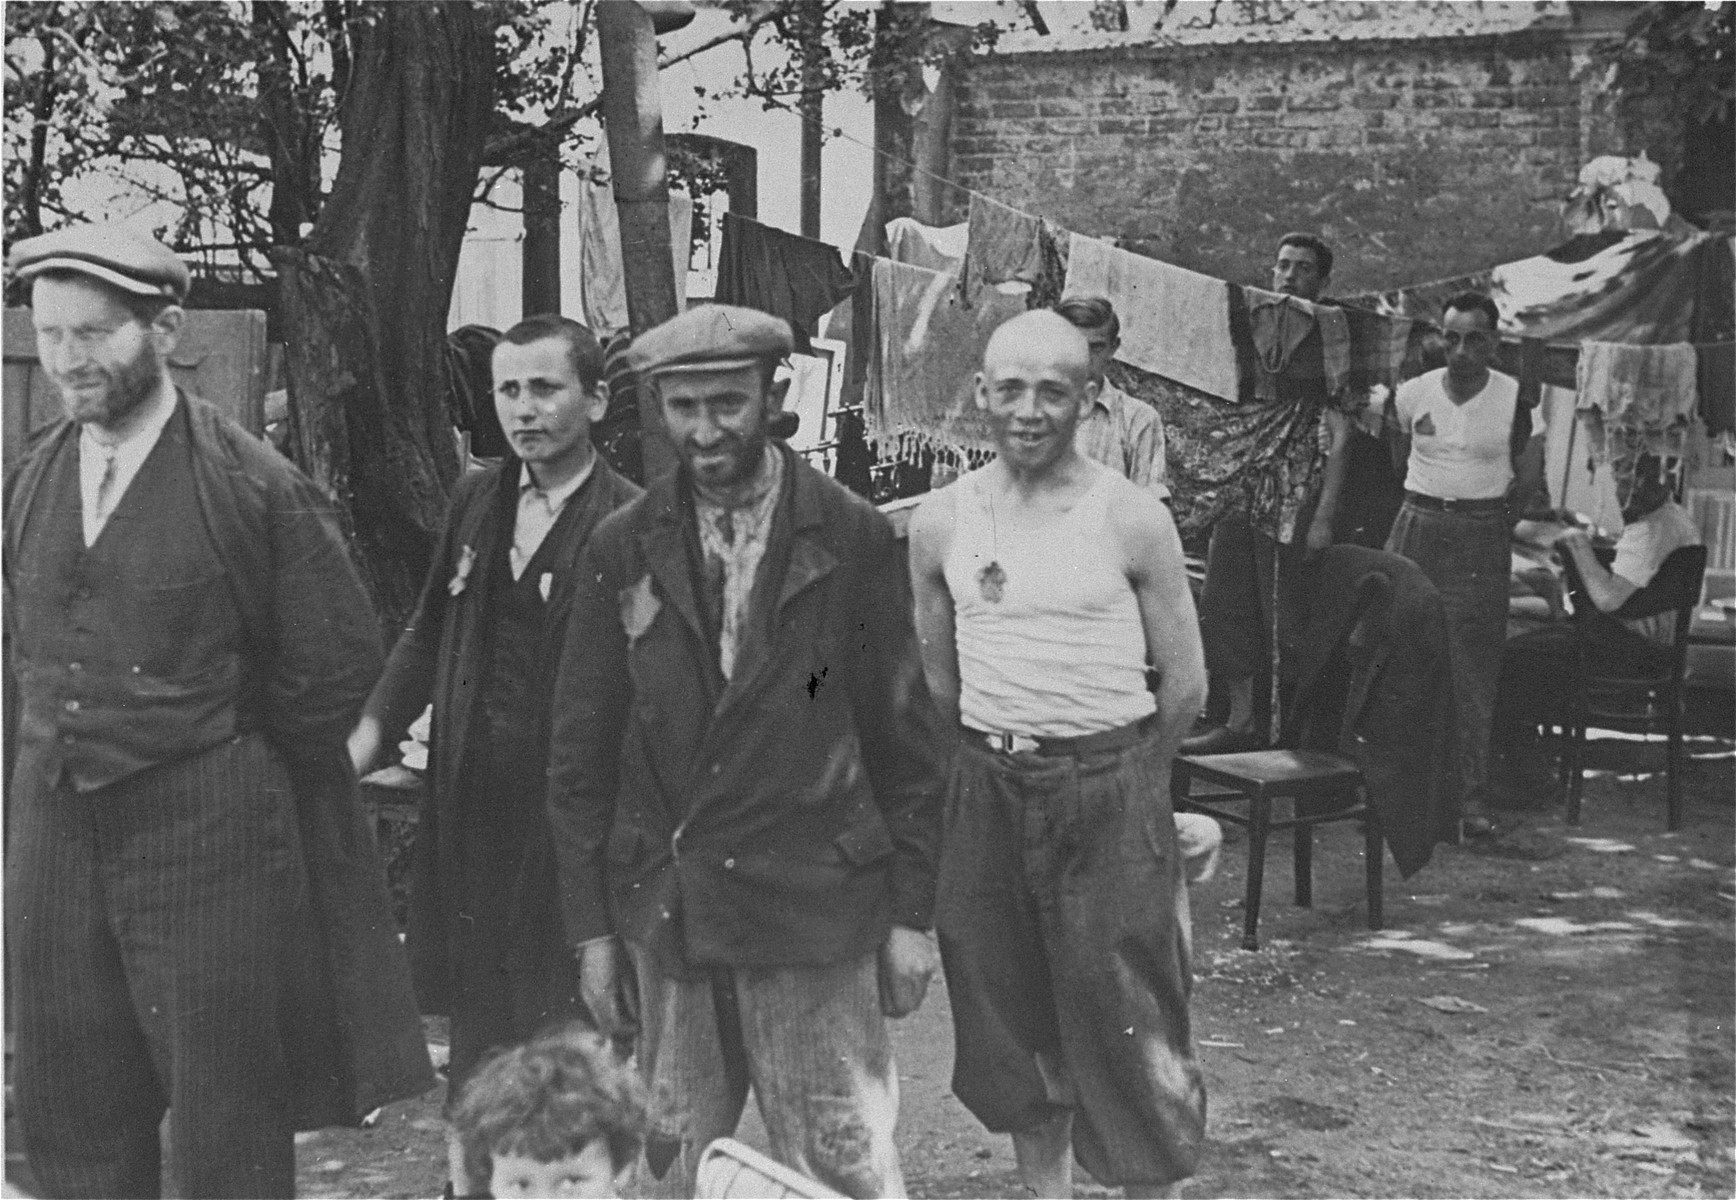 A group of Jewish men stand among furniture and hanging laundry in the Kutno ghetto.